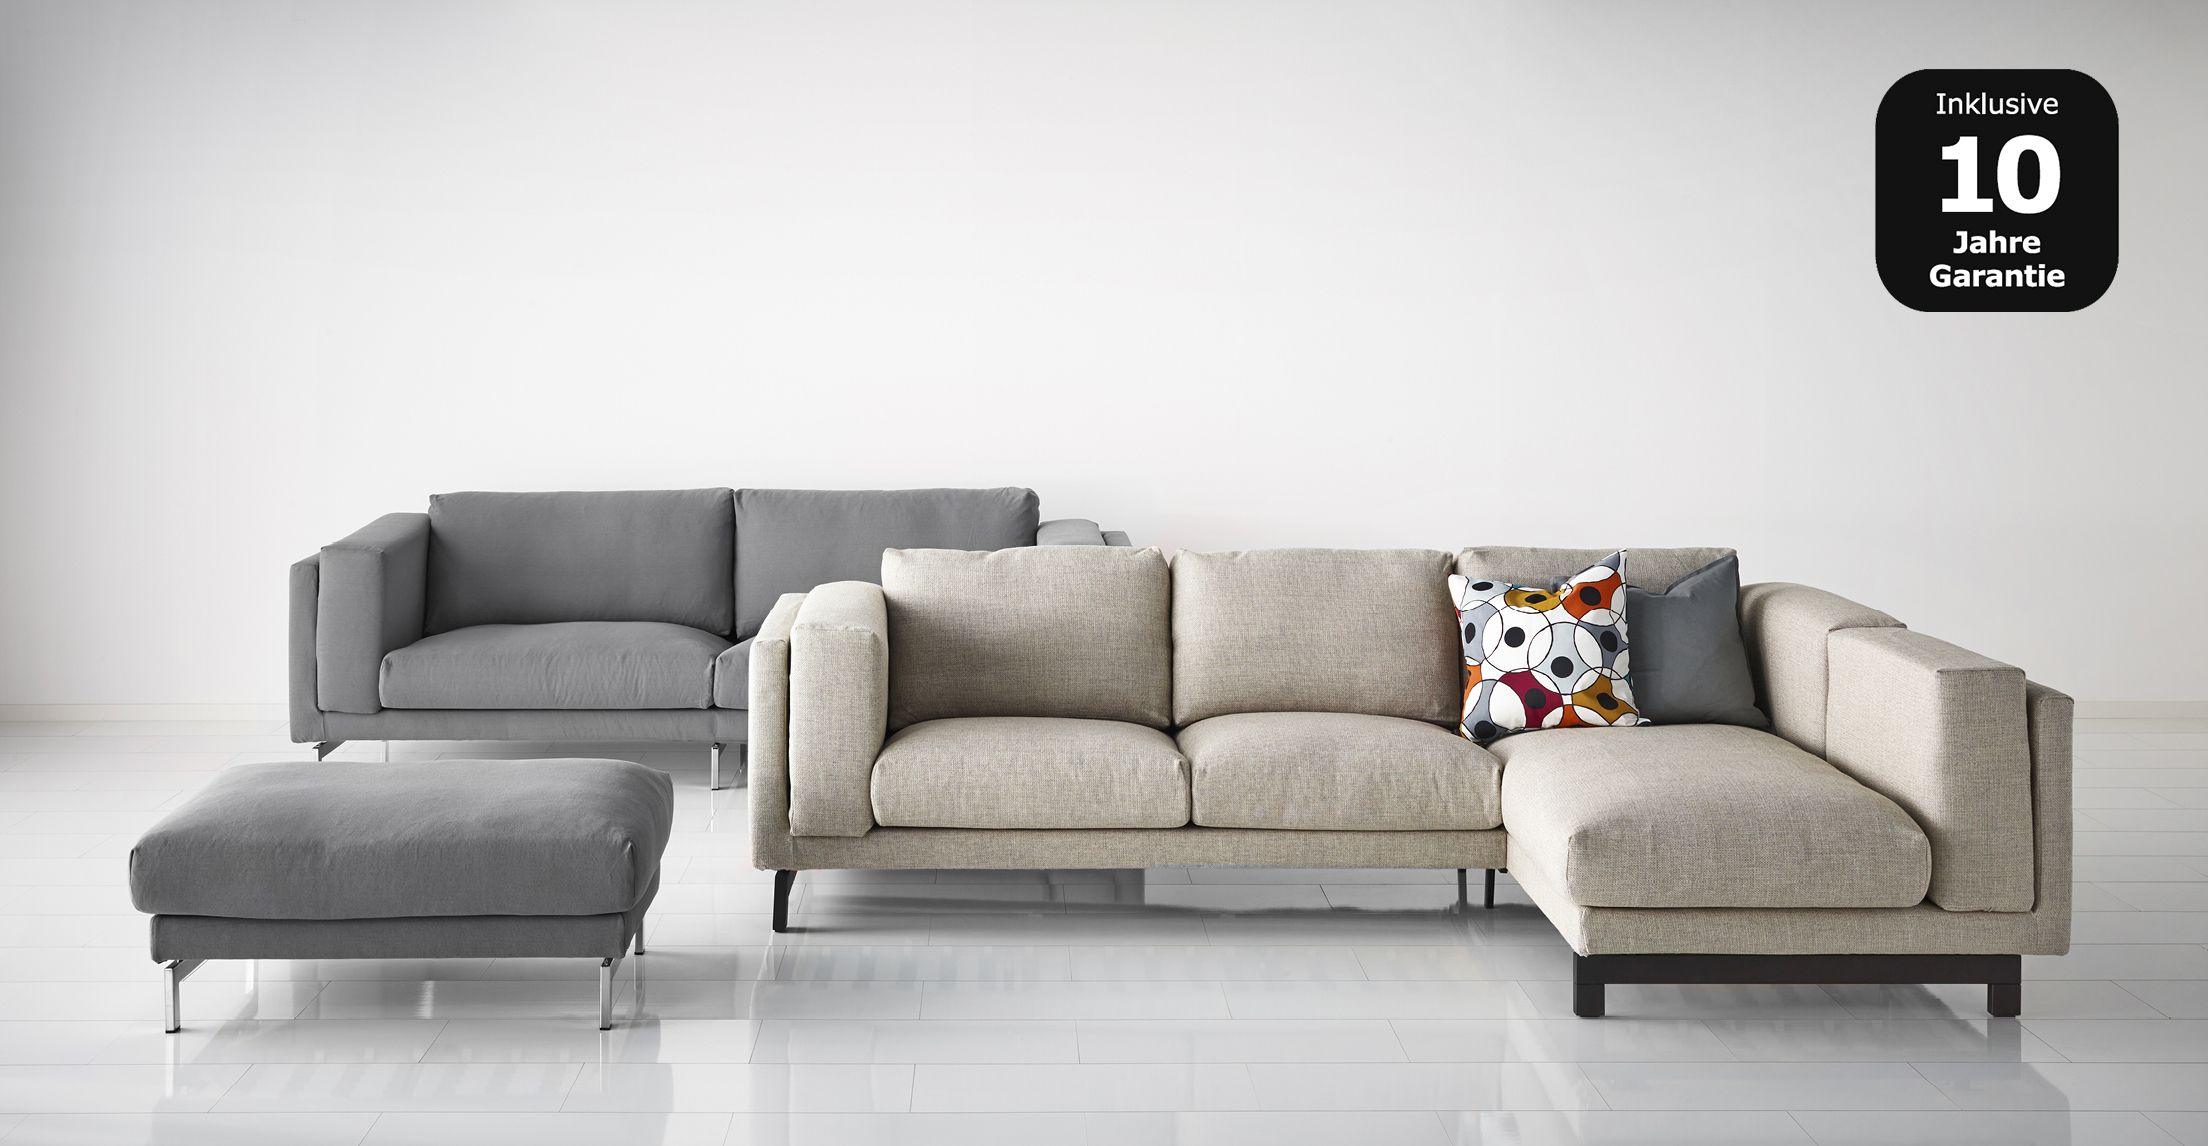 Ikea Nockeby Bank : Ikea nockeby sofa house ideas salones hogar series